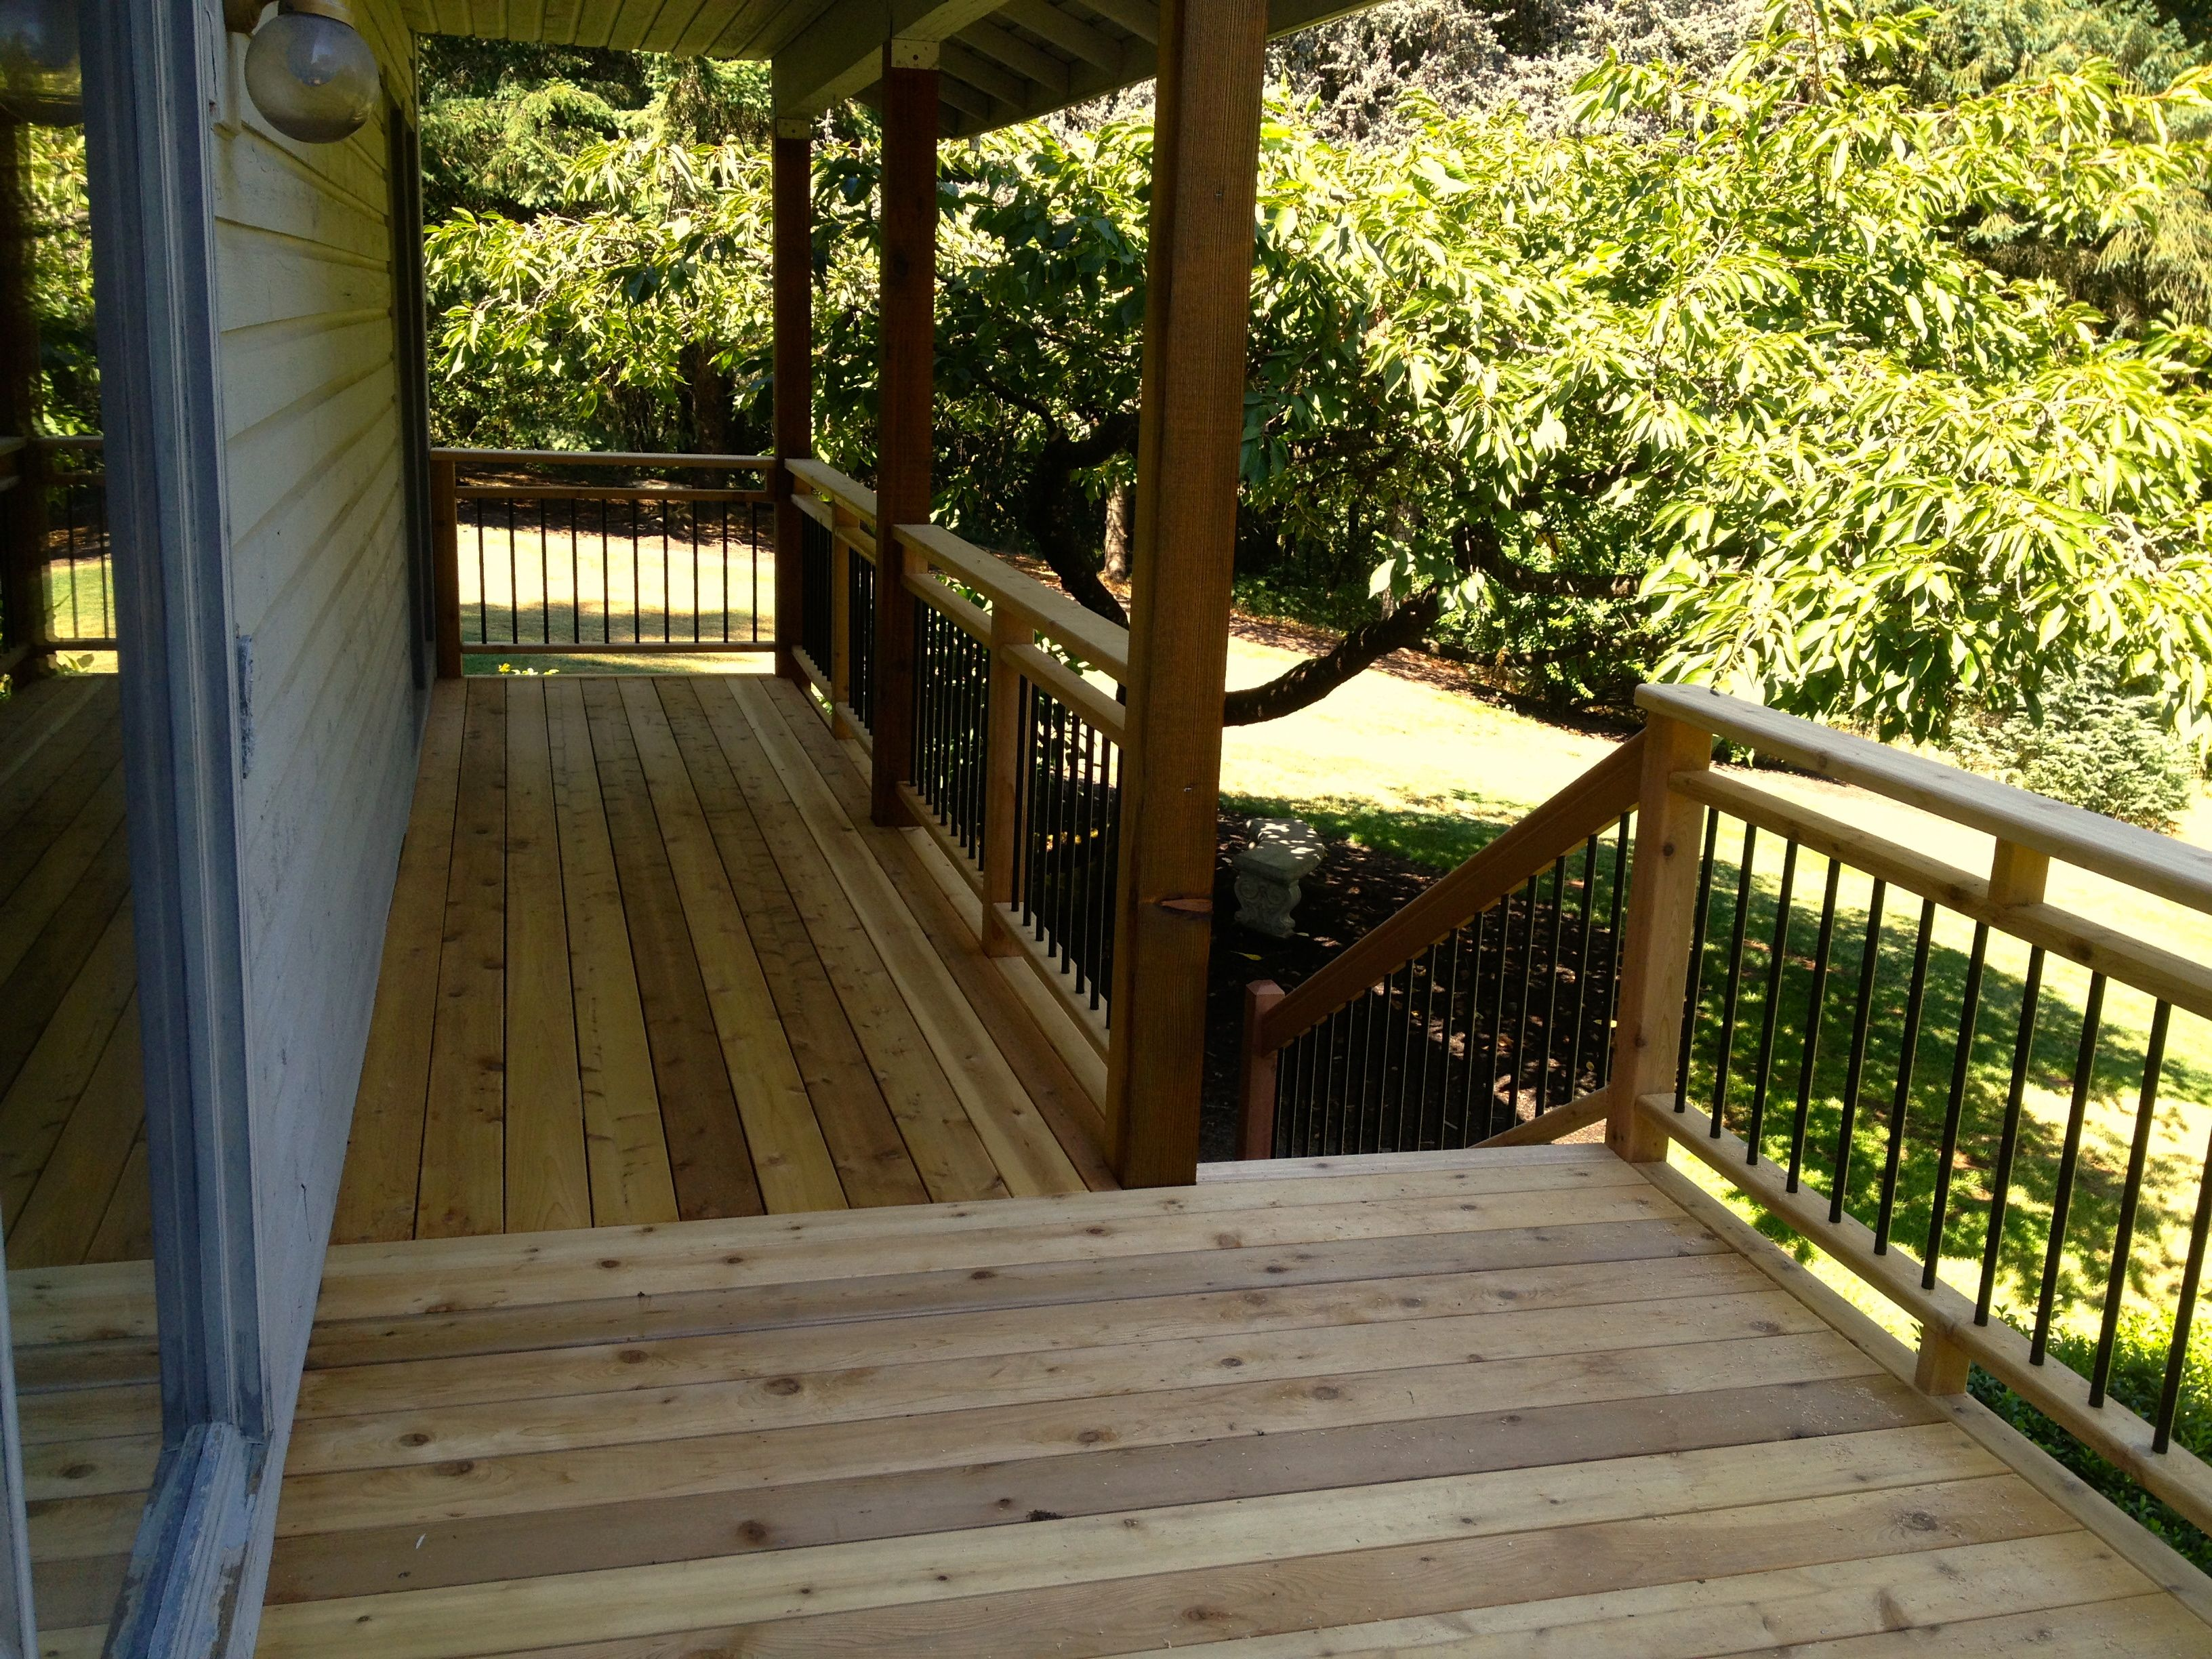 Cedar deck, picket rails and steps